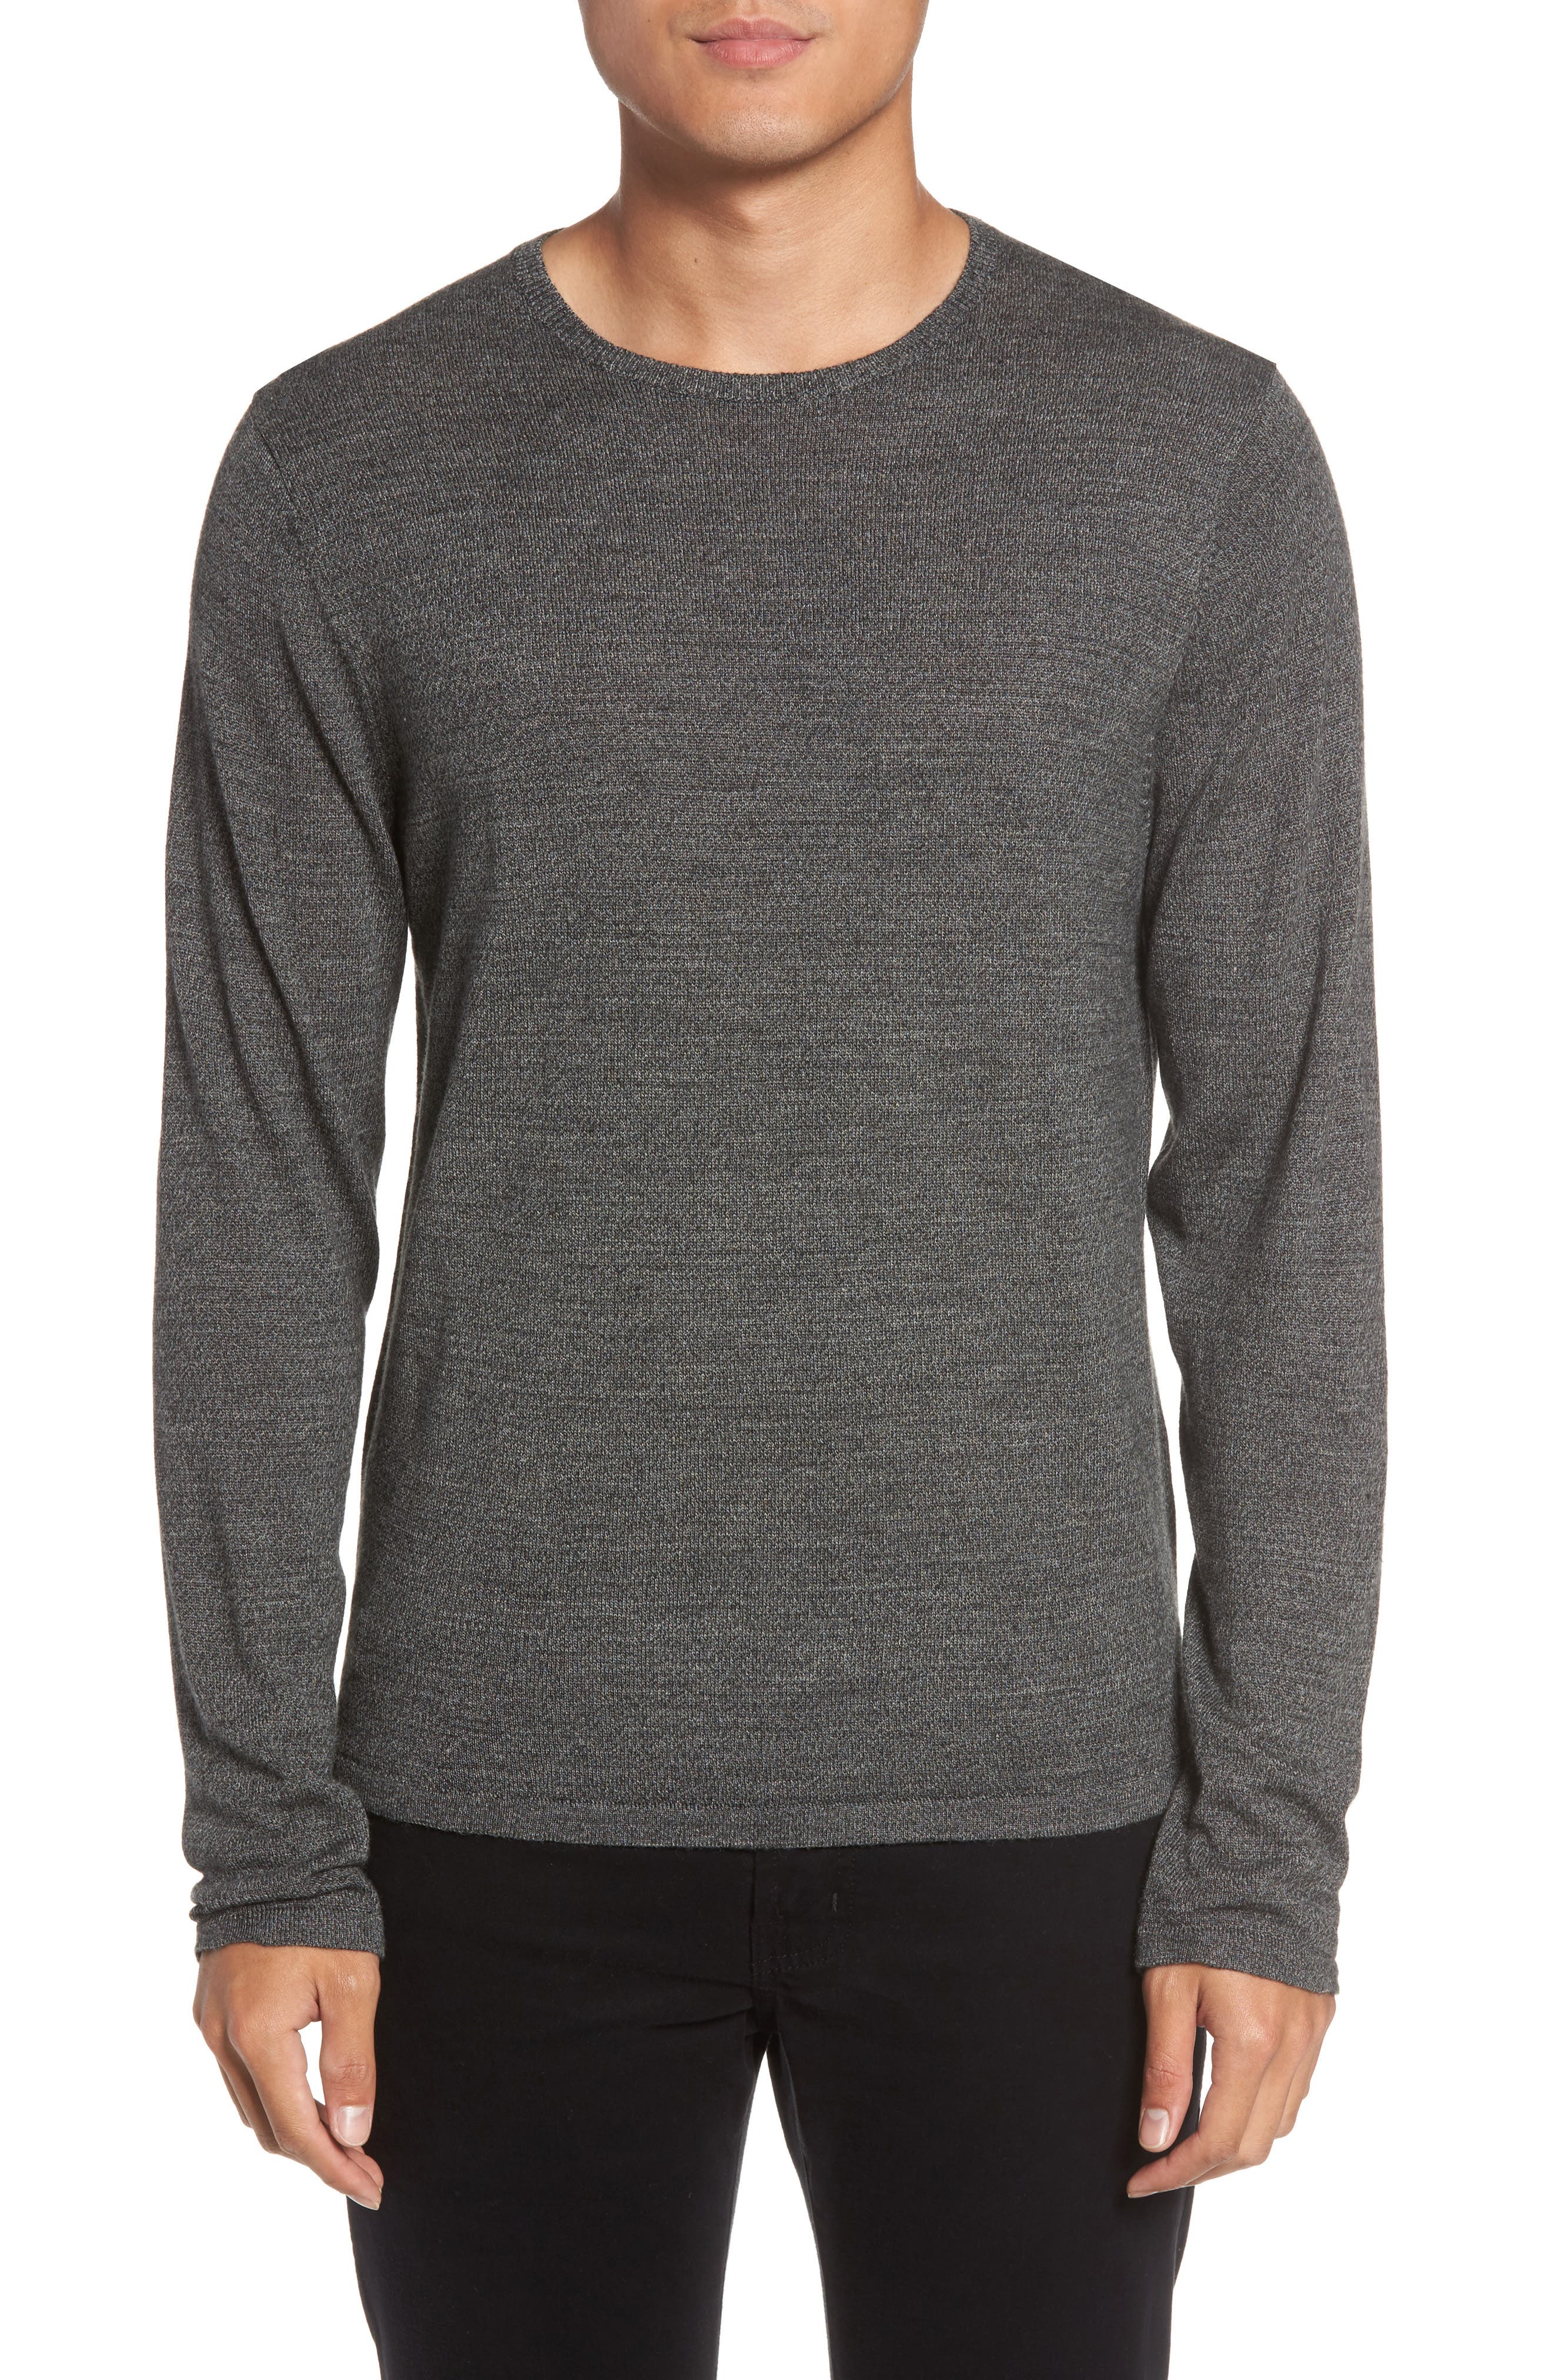 Calibrate Merino Blend Crewneck Sweater